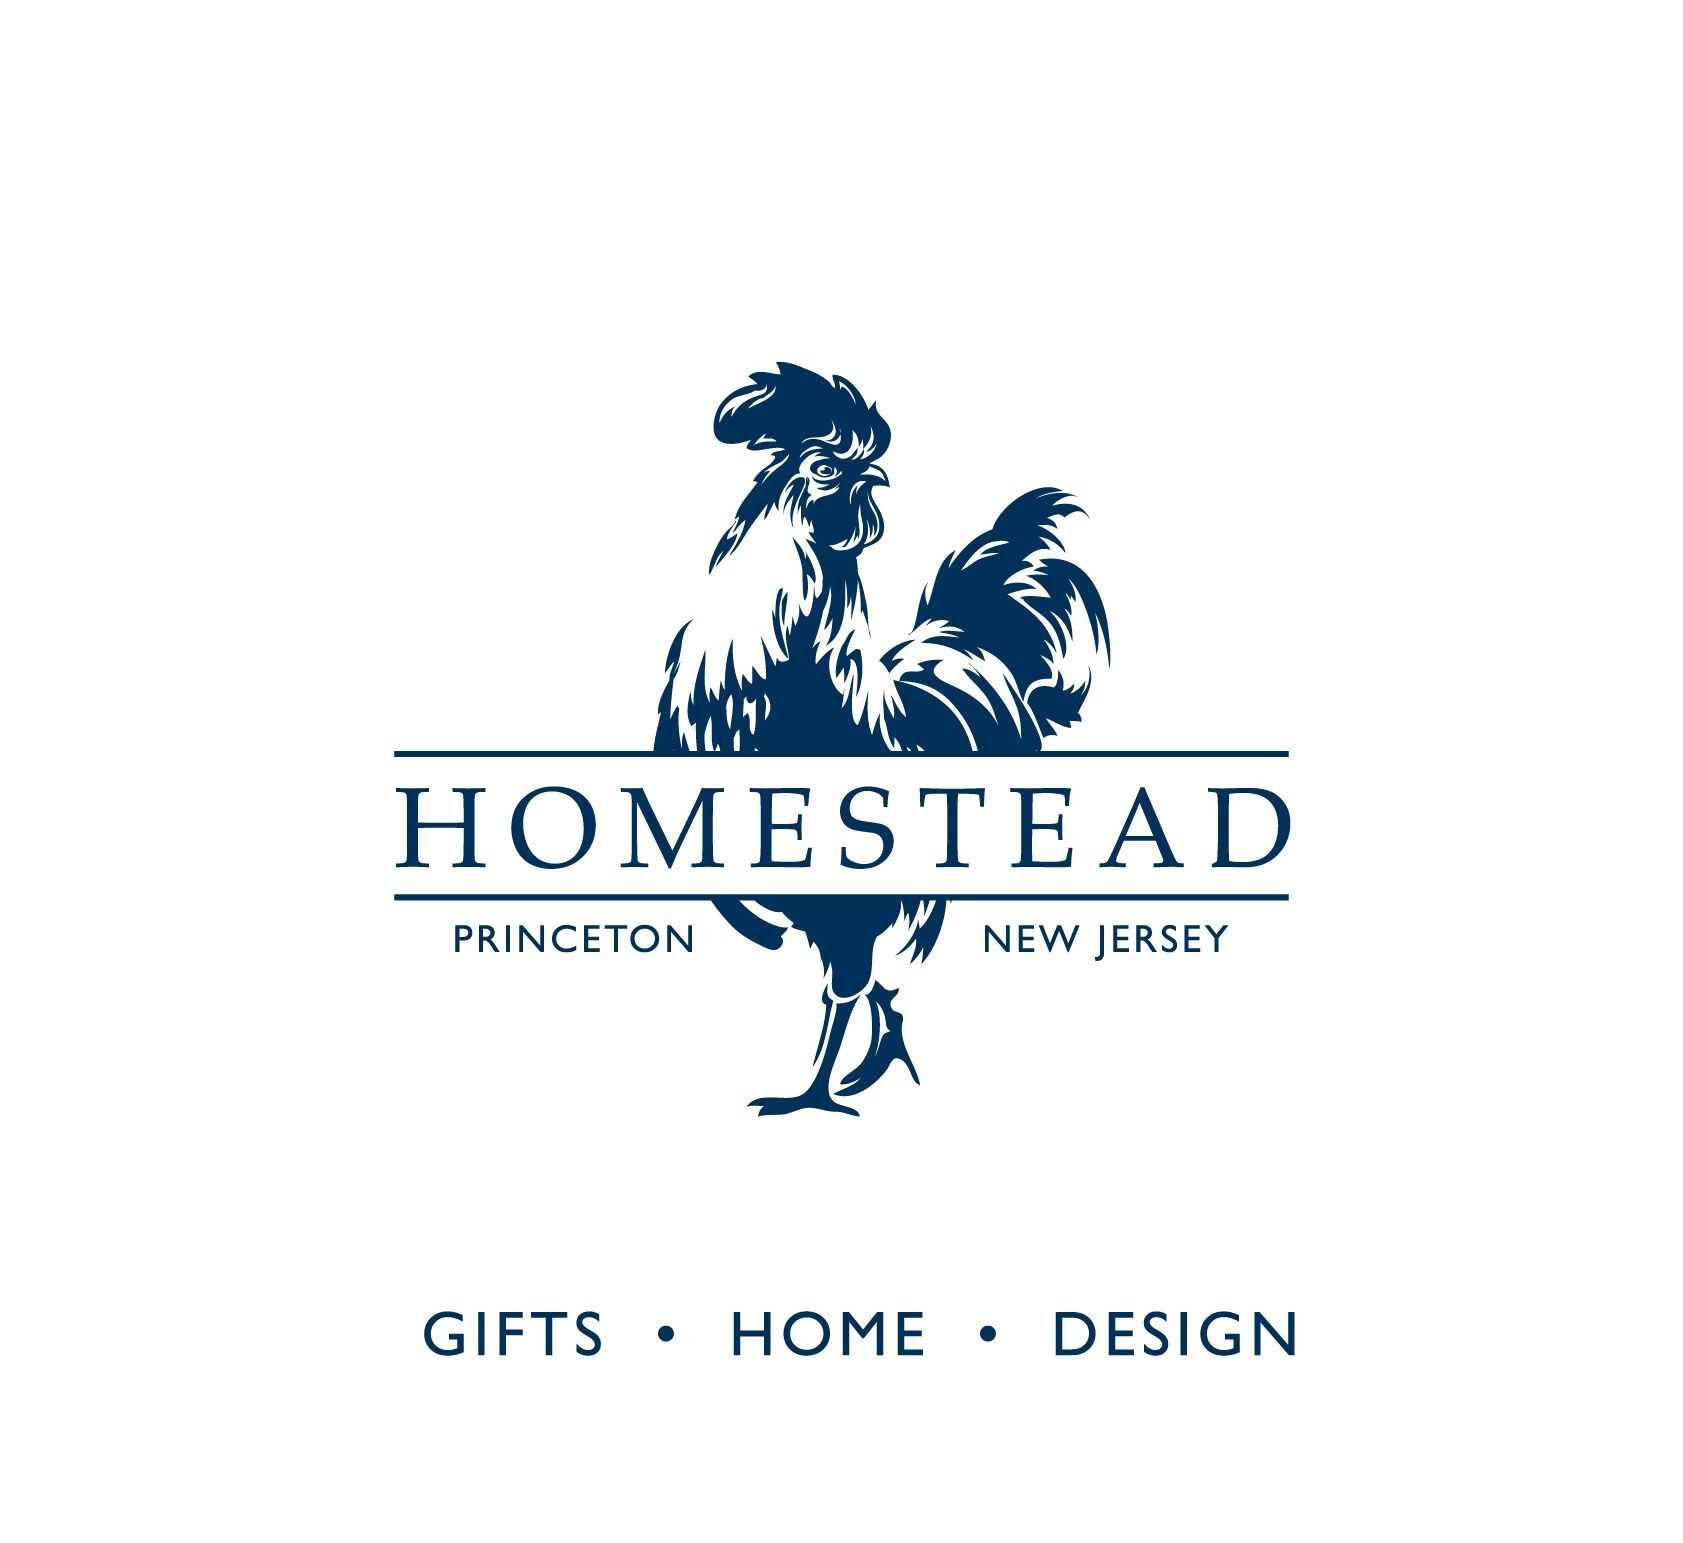 HOMESTEAD_LOGO_FINAL_release_logo_gifts_home_design (2).jpg